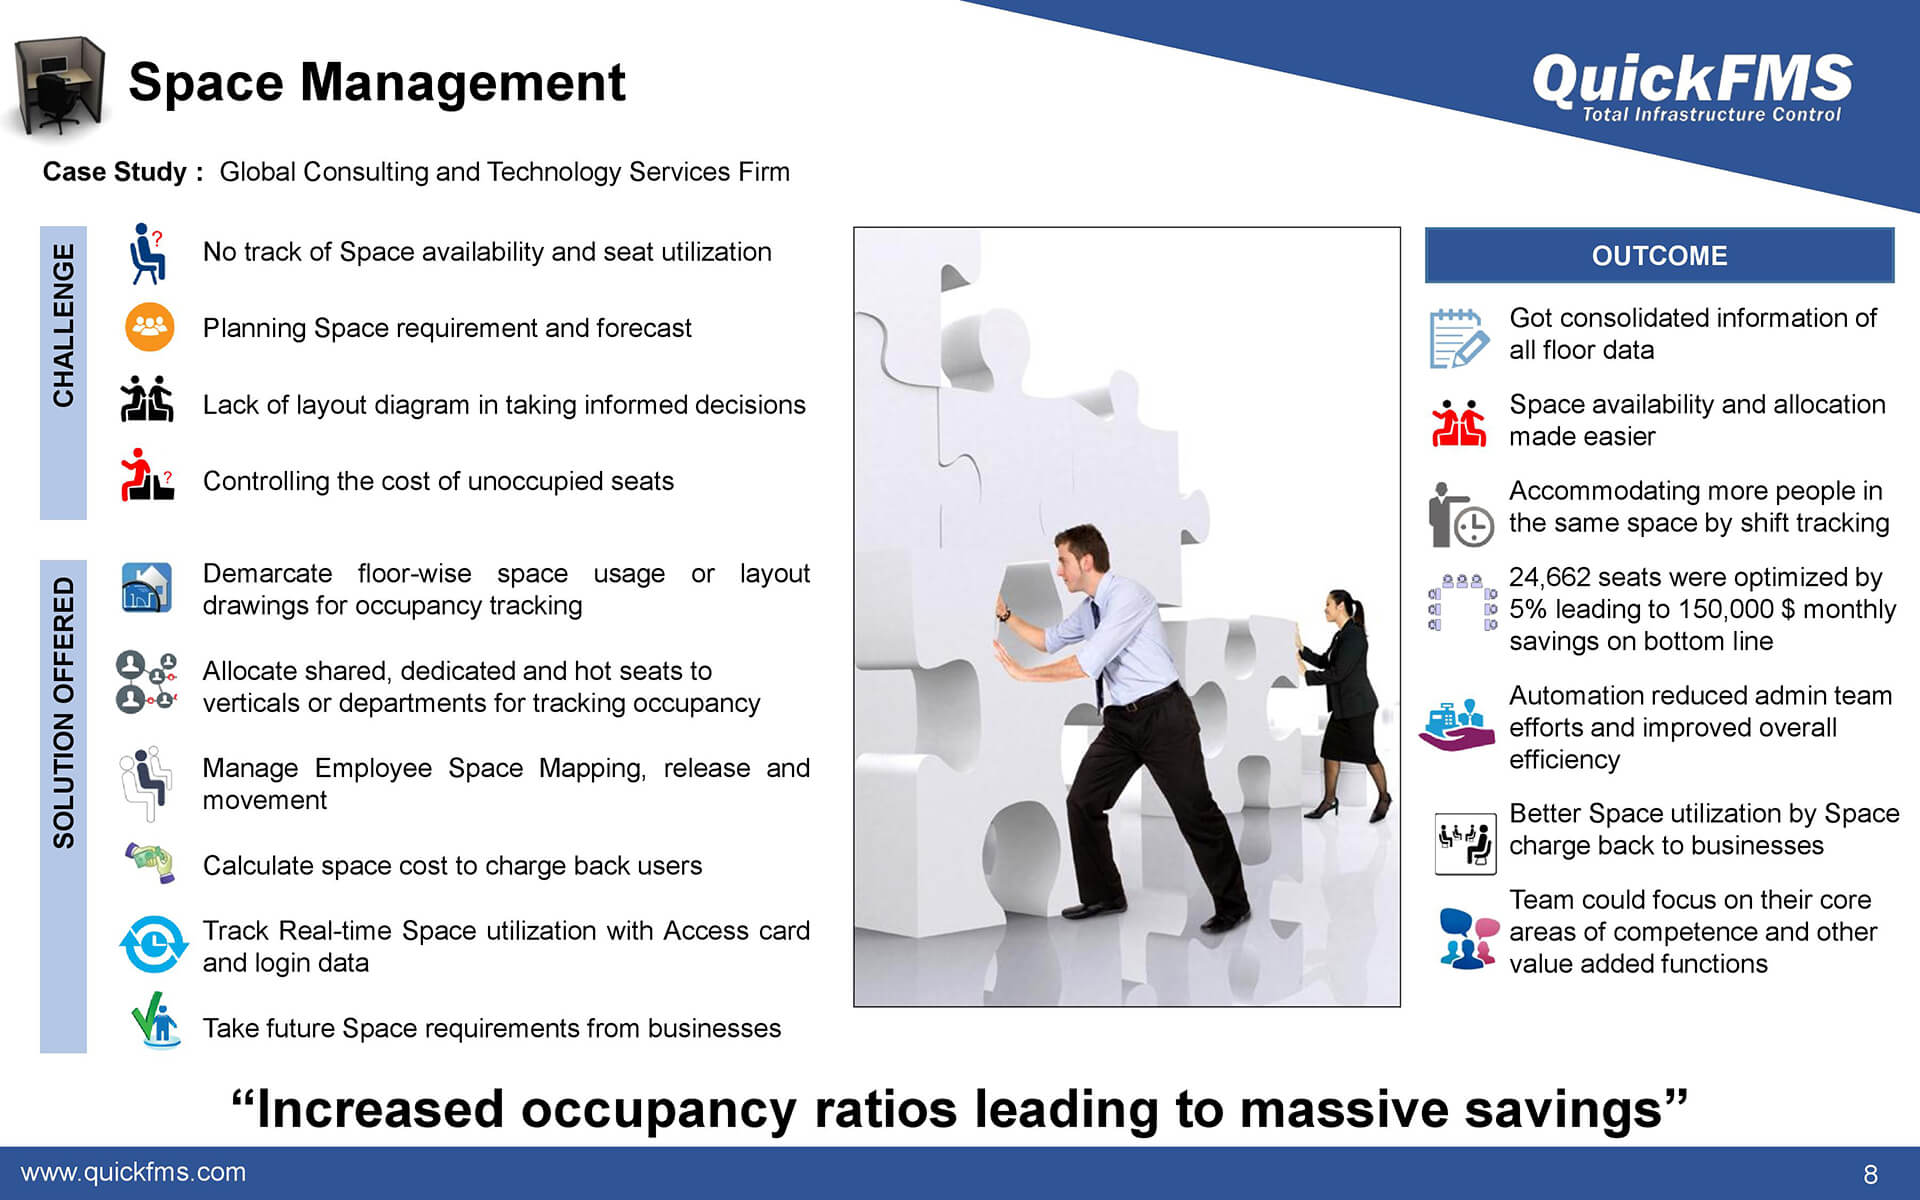 Overview presentation on Space Management - QuickFMS